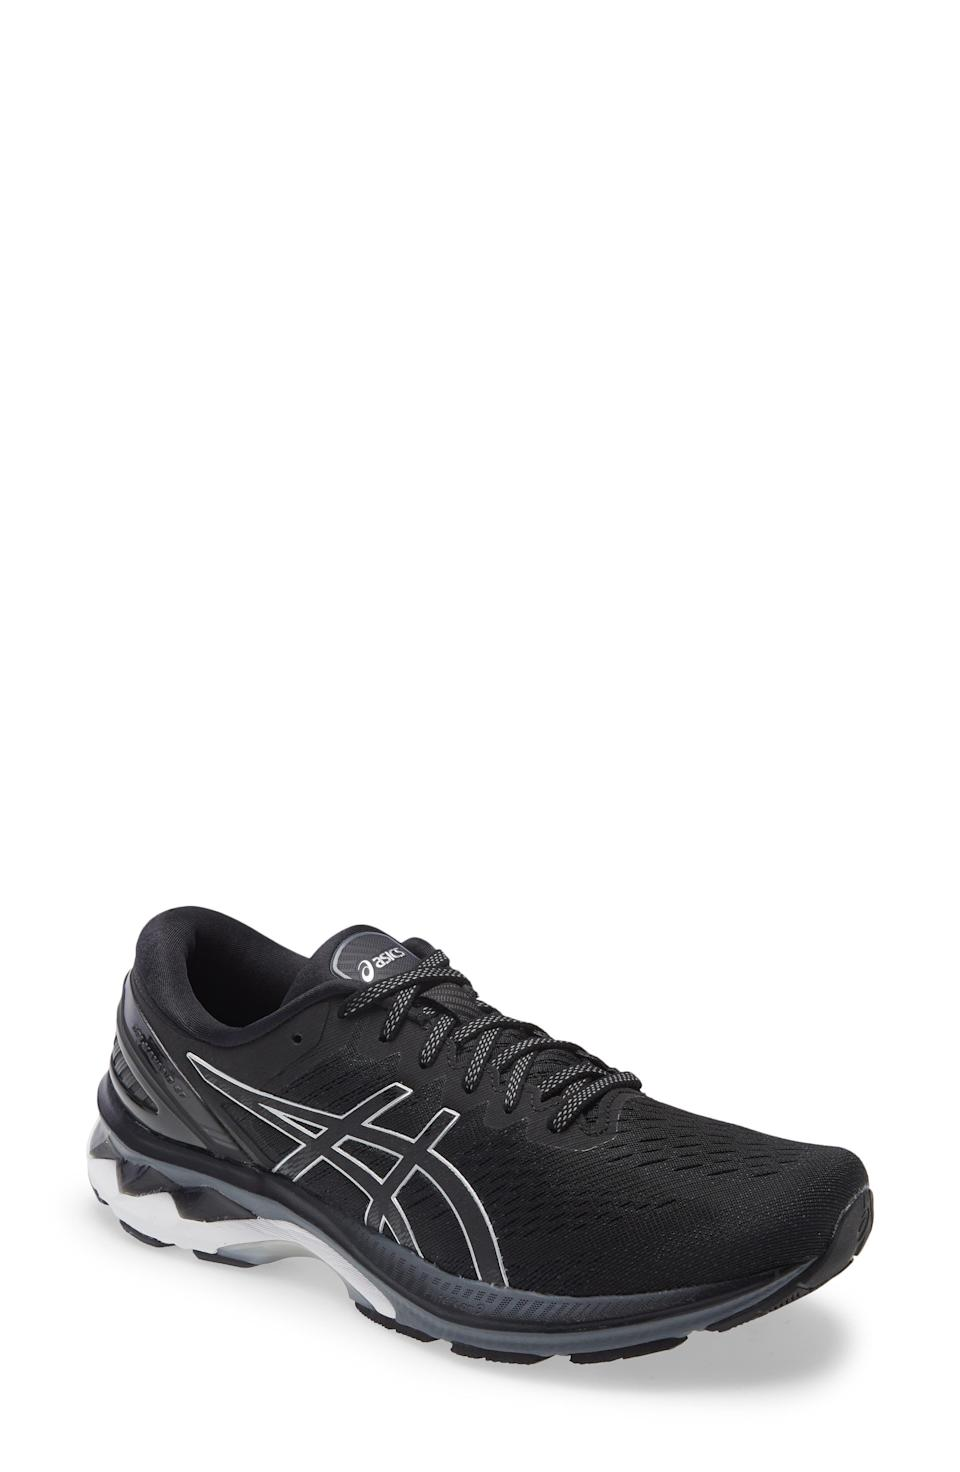 """<p><strong>ASICS</strong></p><p>nordstrom.com</p><p><a href=""""https://go.redirectingat.com?id=74968X1596630&url=https%3A%2F%2Fwww.nordstrom.com%2Fs%2Fasics-gel-kayano-27-running-shoe-men%2F5784739&sref=https%3A%2F%2Fwww.esquire.com%2Fstyle%2Fmens-fashion%2Fg37002225%2Fnordstrom-anniversary-sale-mens-fashion-deals-2021%2F"""" rel=""""nofollow noopener"""" target=""""_blank"""" data-ylk=""""slk:Shop Now"""" class=""""link rapid-noclick-resp"""">Shop Now</a></p><p><strong>Sale: </strong><strong>$99.90</strong></p><p><strong>After Sale: $160.00</strong></p><p>Can't-miss running shoes that also happen to work for just hanging out.</p>"""